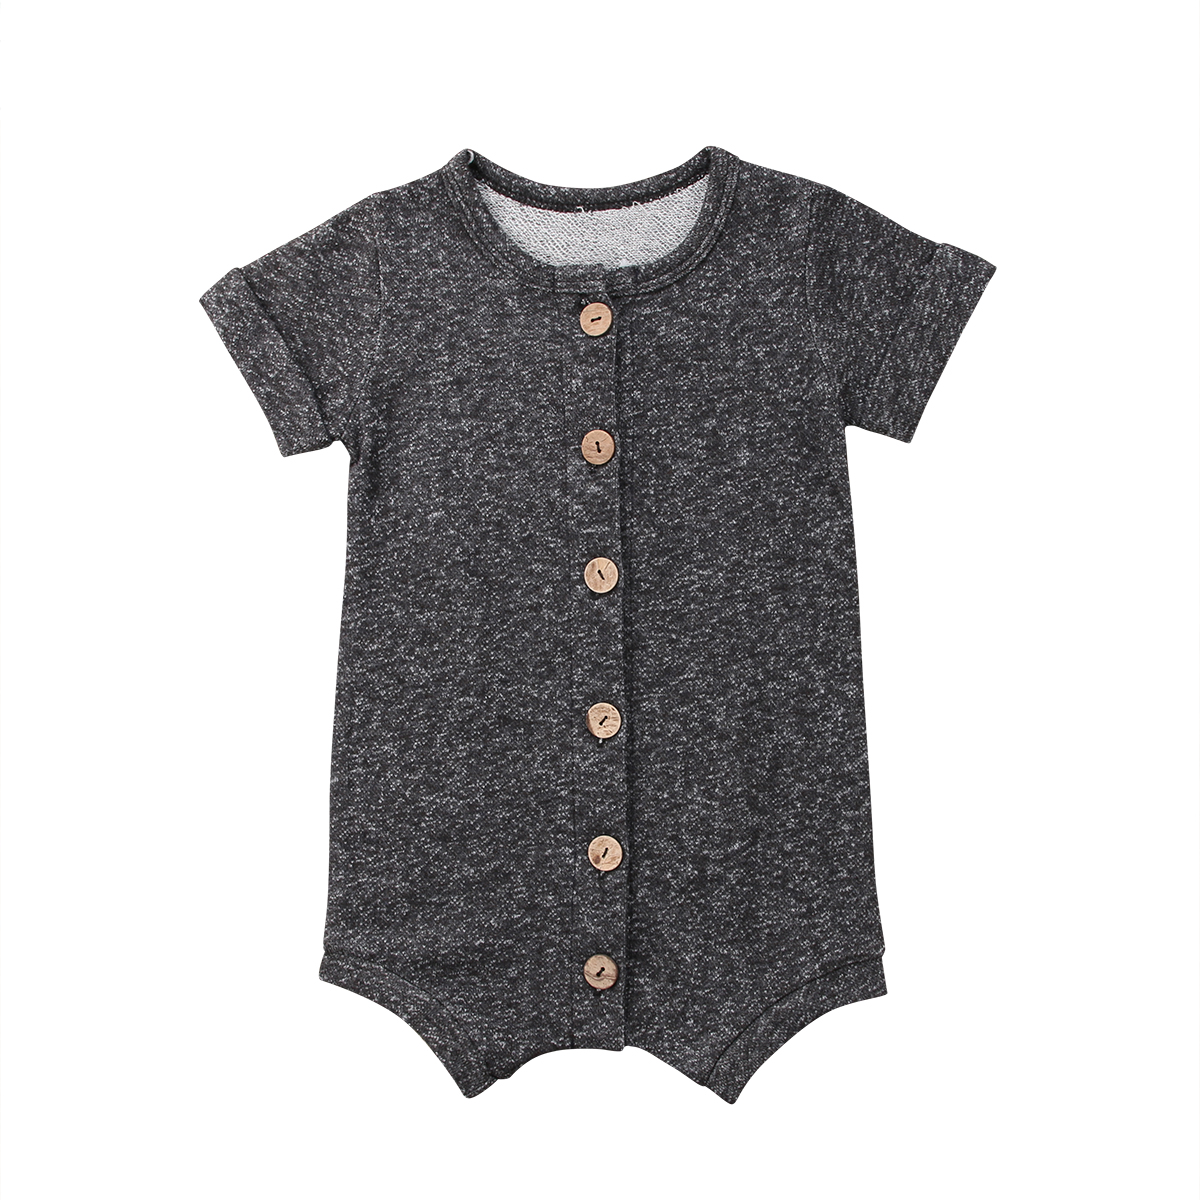 Boy Girl Romper Baby Boy Girl Summer Gray Short Sleeve Button Romper Jumpsuit Playsuit Cotton Shorts Clothes 0-24M